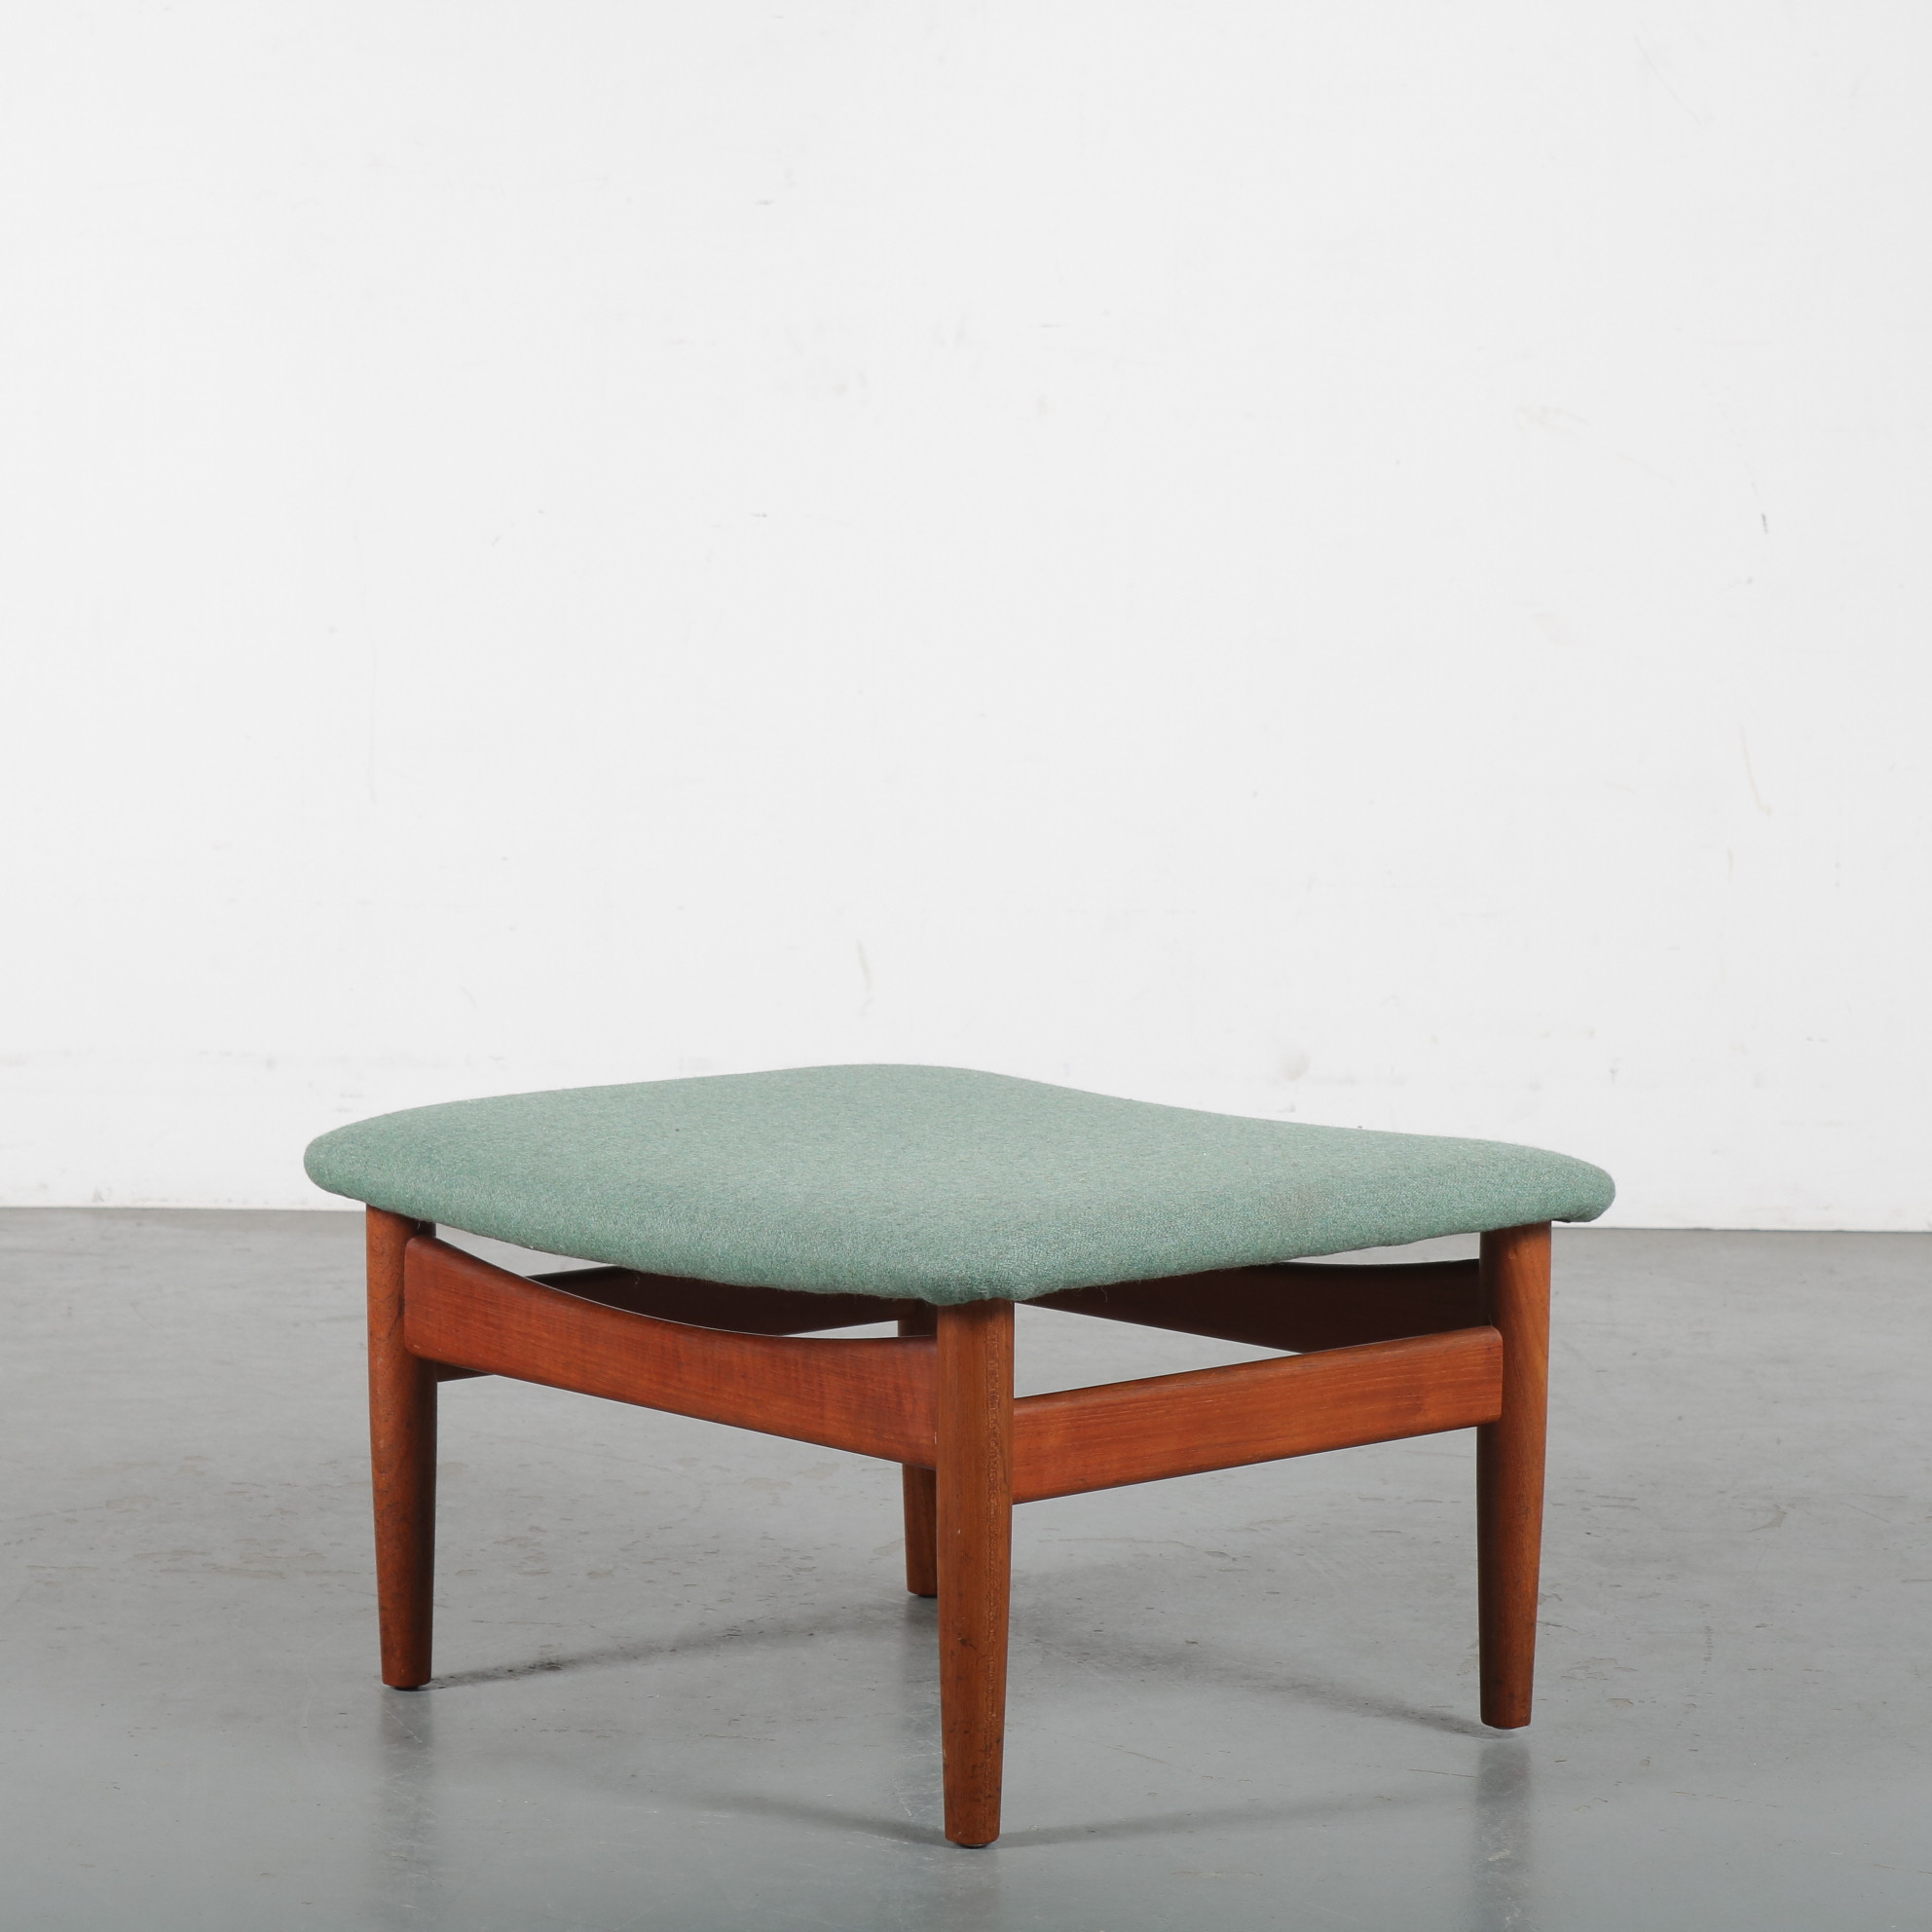 m24198 1950s Ottoman on teak base with new upholstery from the Japan series Finn Juhl France & Son / Denmark